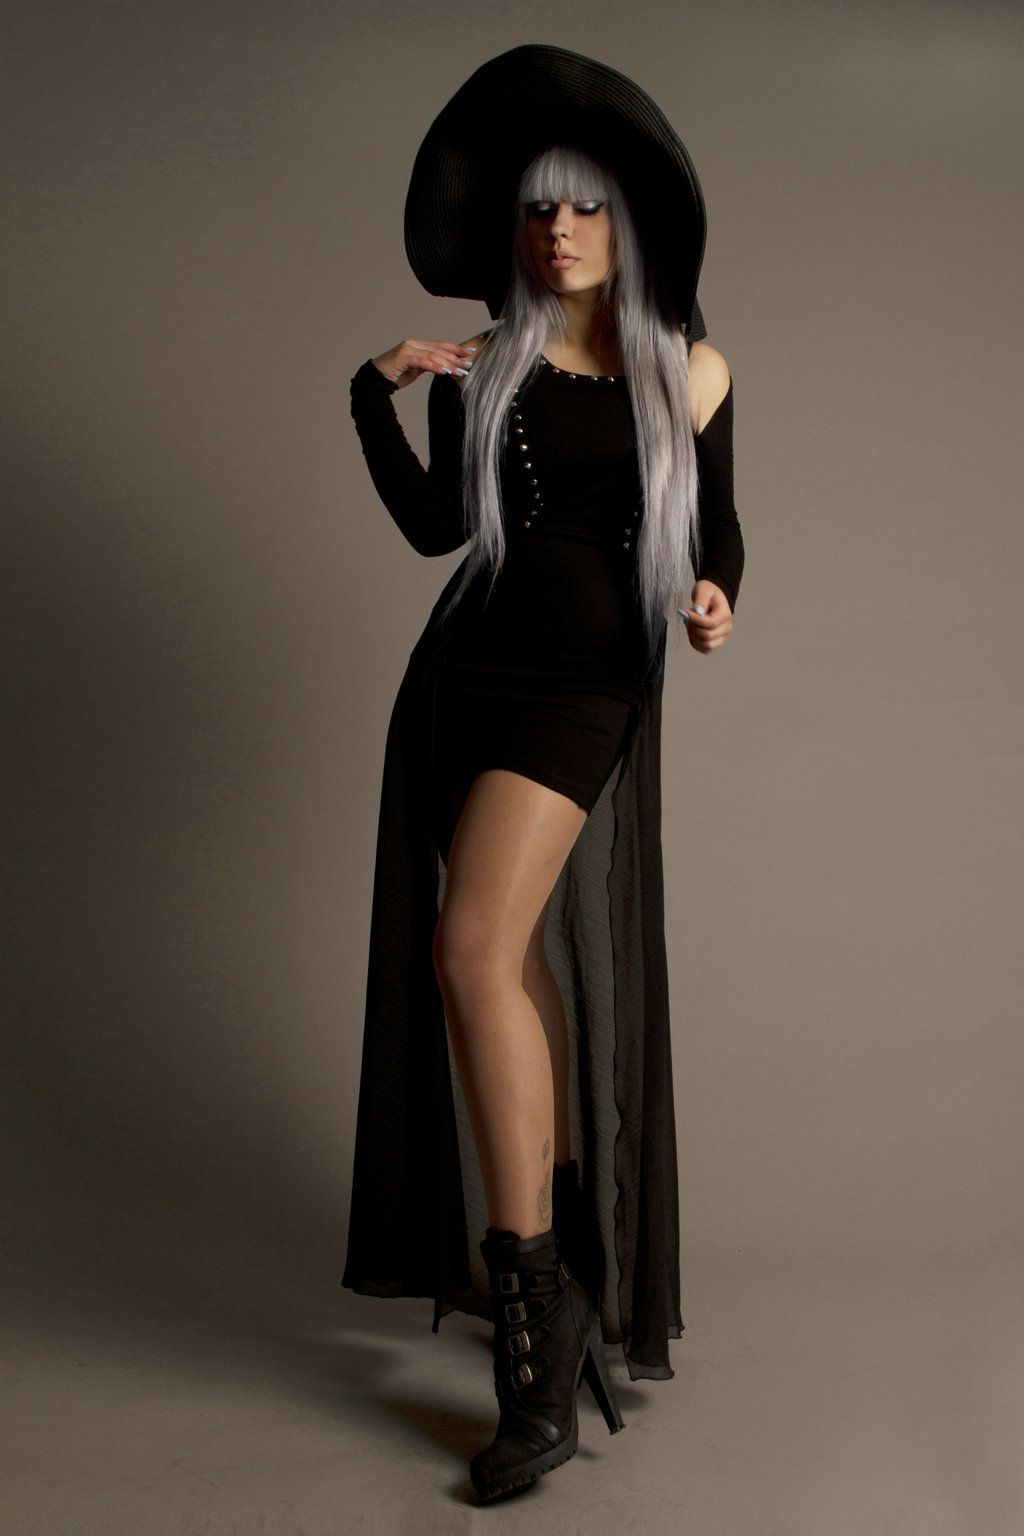 The Witches Closet The Modern Vogue Witch S Room Madonna Vogue Video Witch Outfit Modern Witch Alternative Fashion